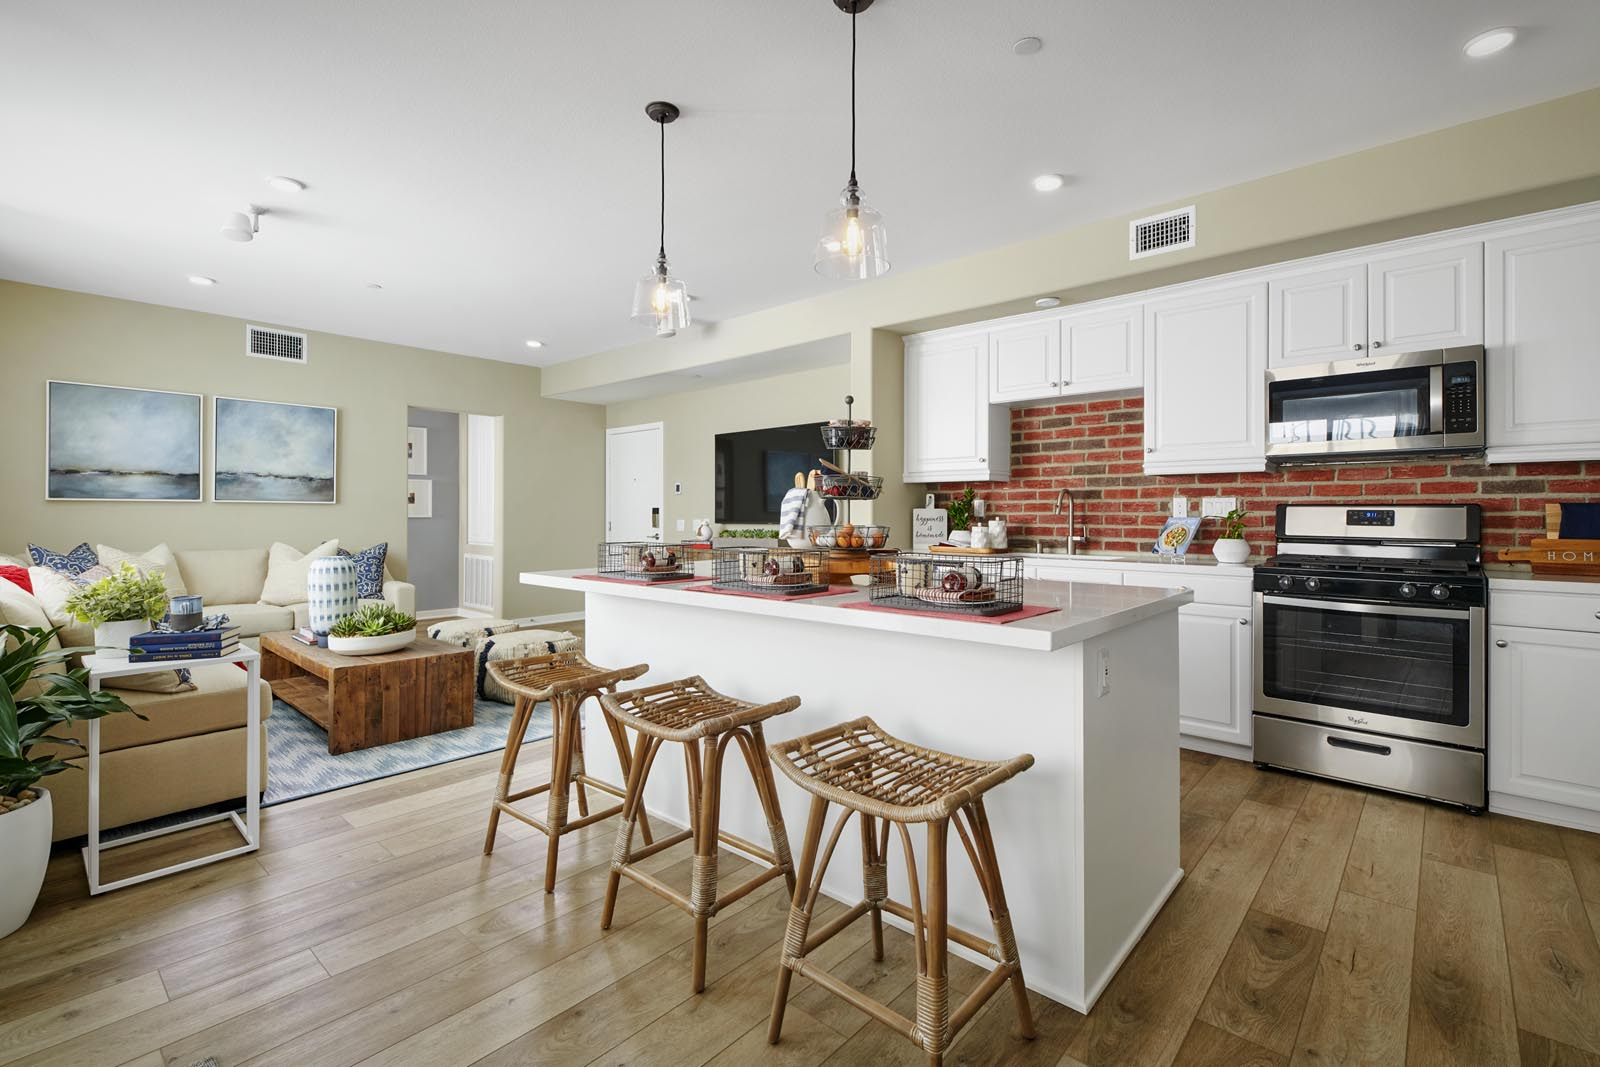 Kitchen | Residence 4 | Aspire | New Homes in Rancho Cucamonga, CA | Van Daele Homes